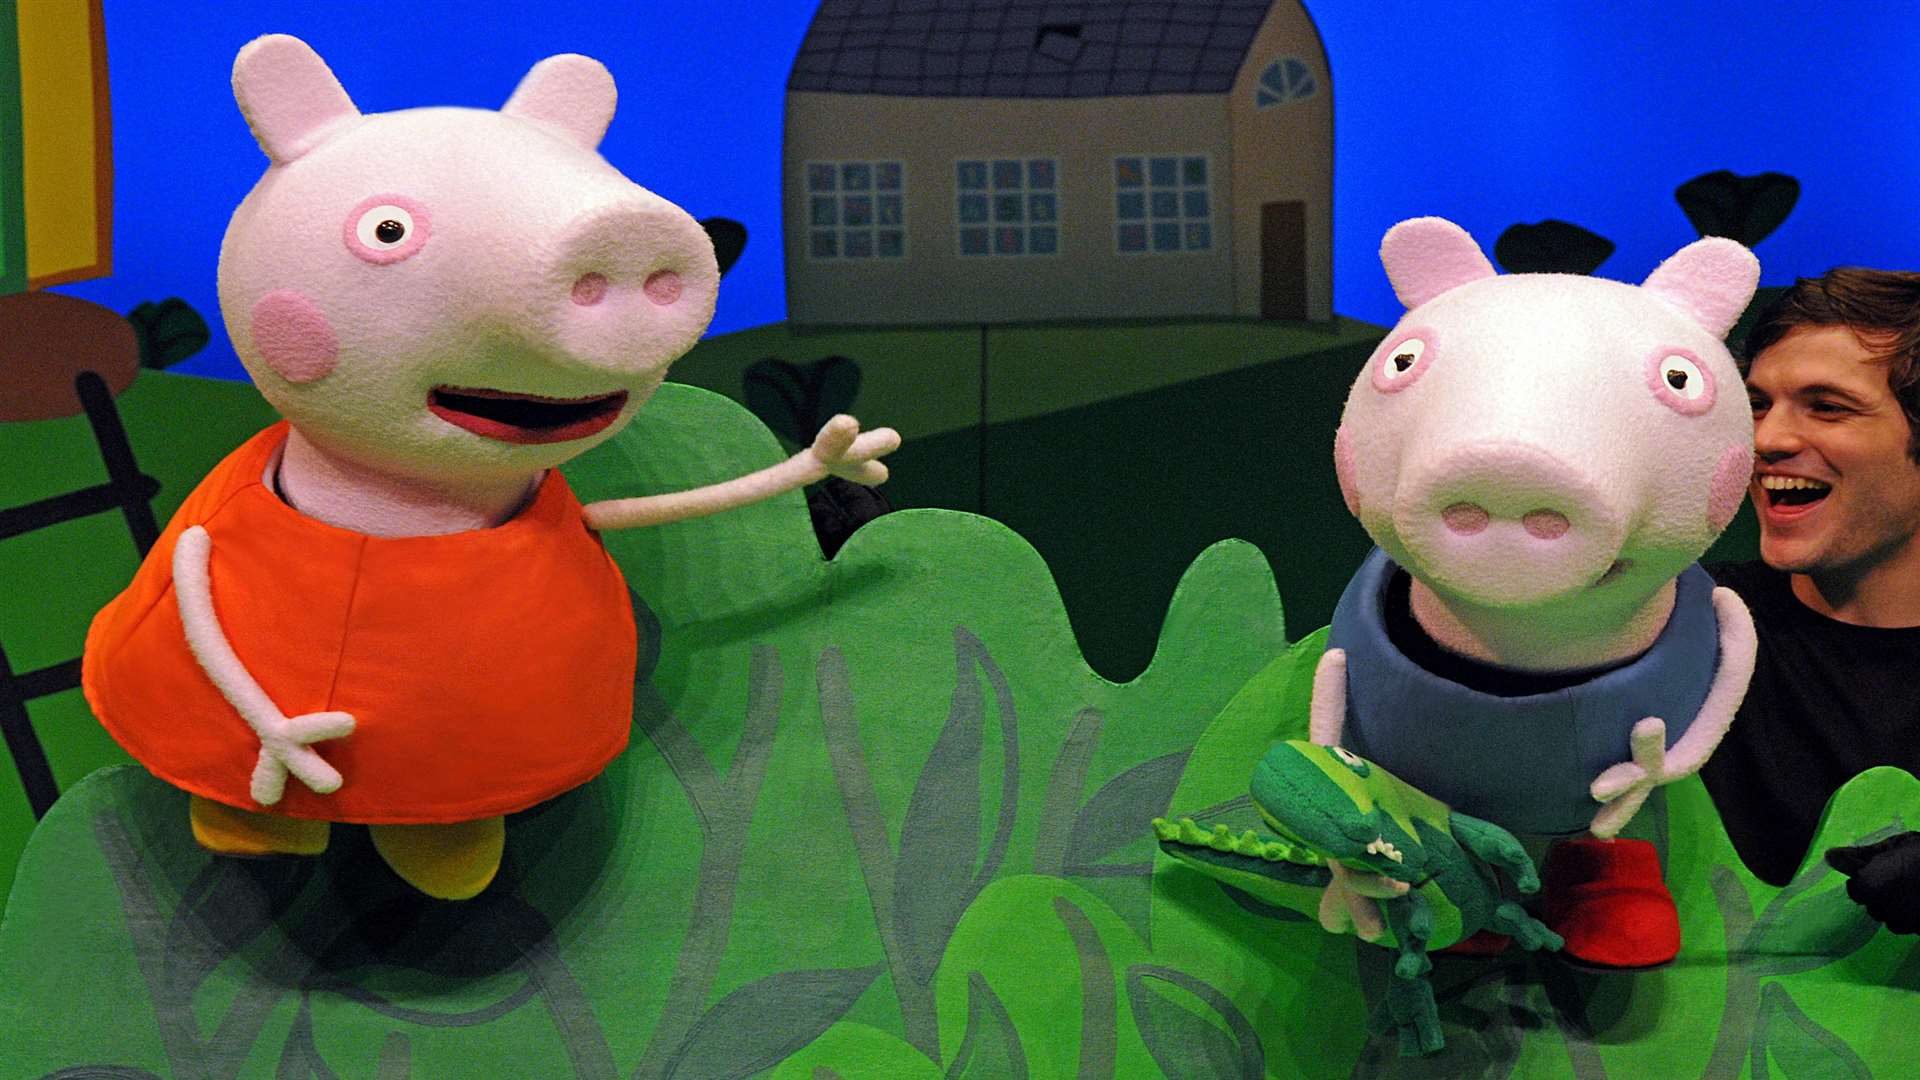 Peppa Pig and George in Peppa Pig's Big Splash